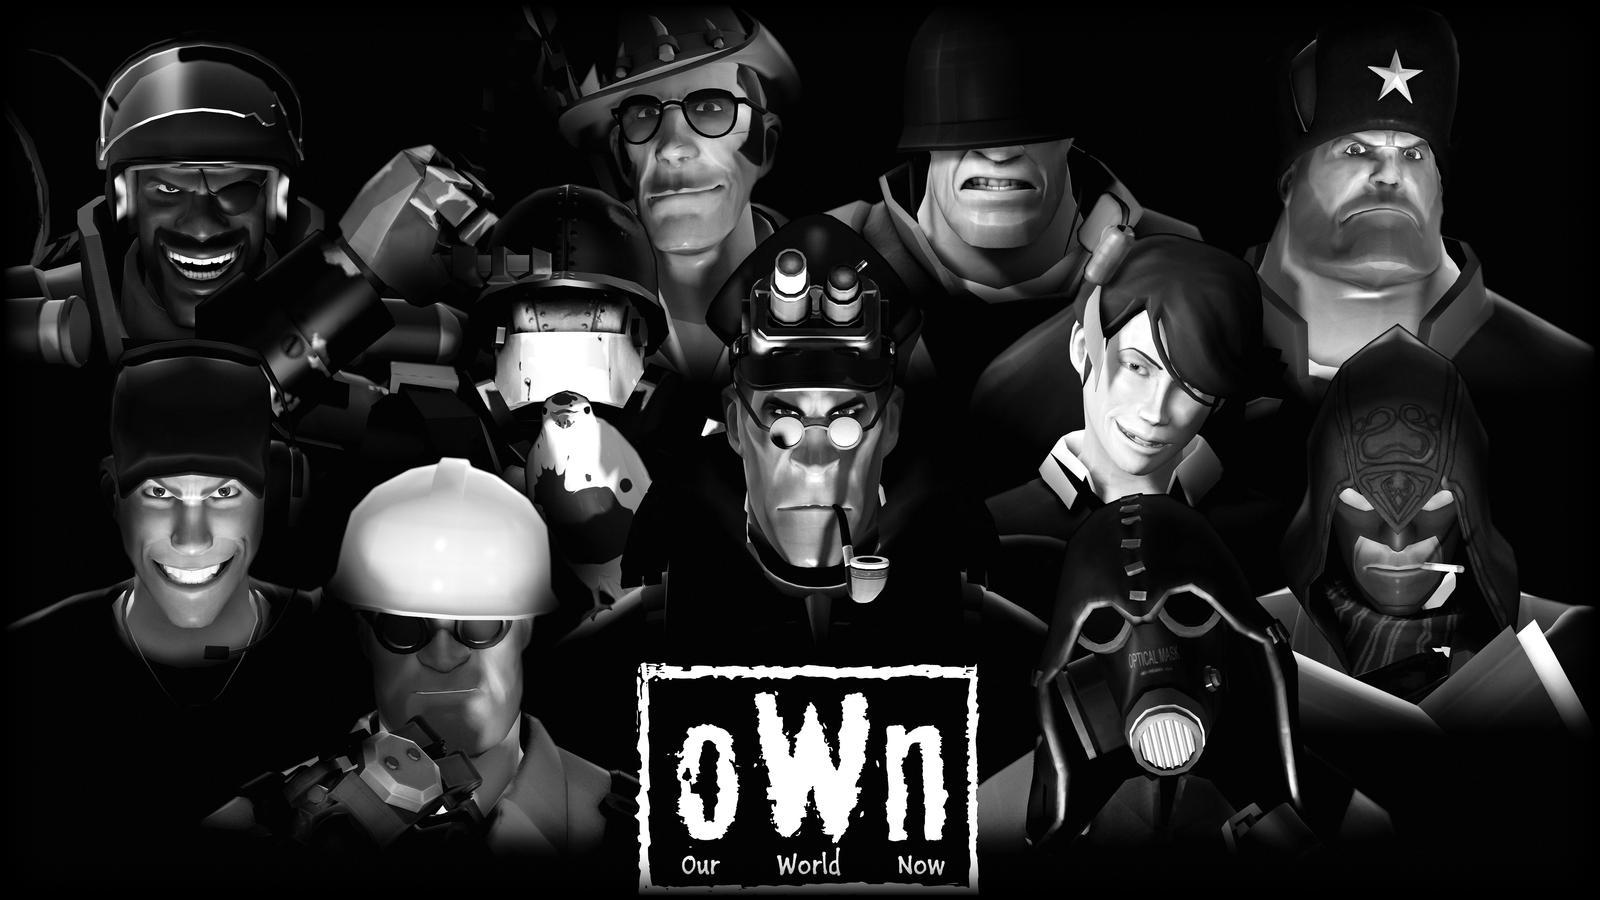 _sfm__team_fortress_2___own_wallpaper_by